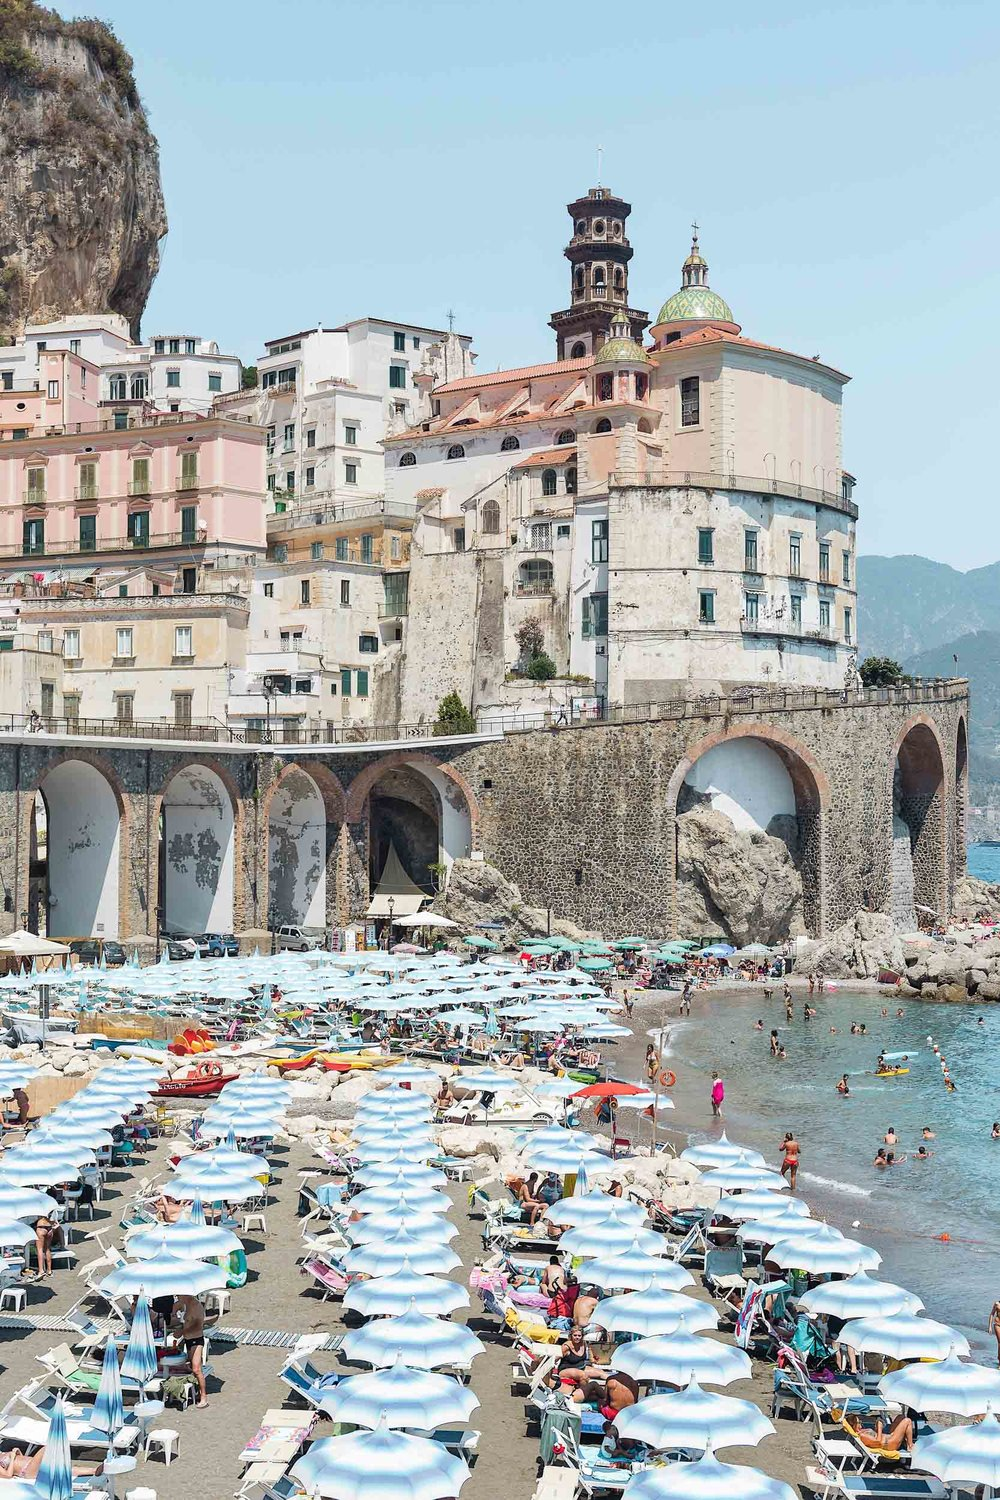 Atrani, the smallest town in Italy